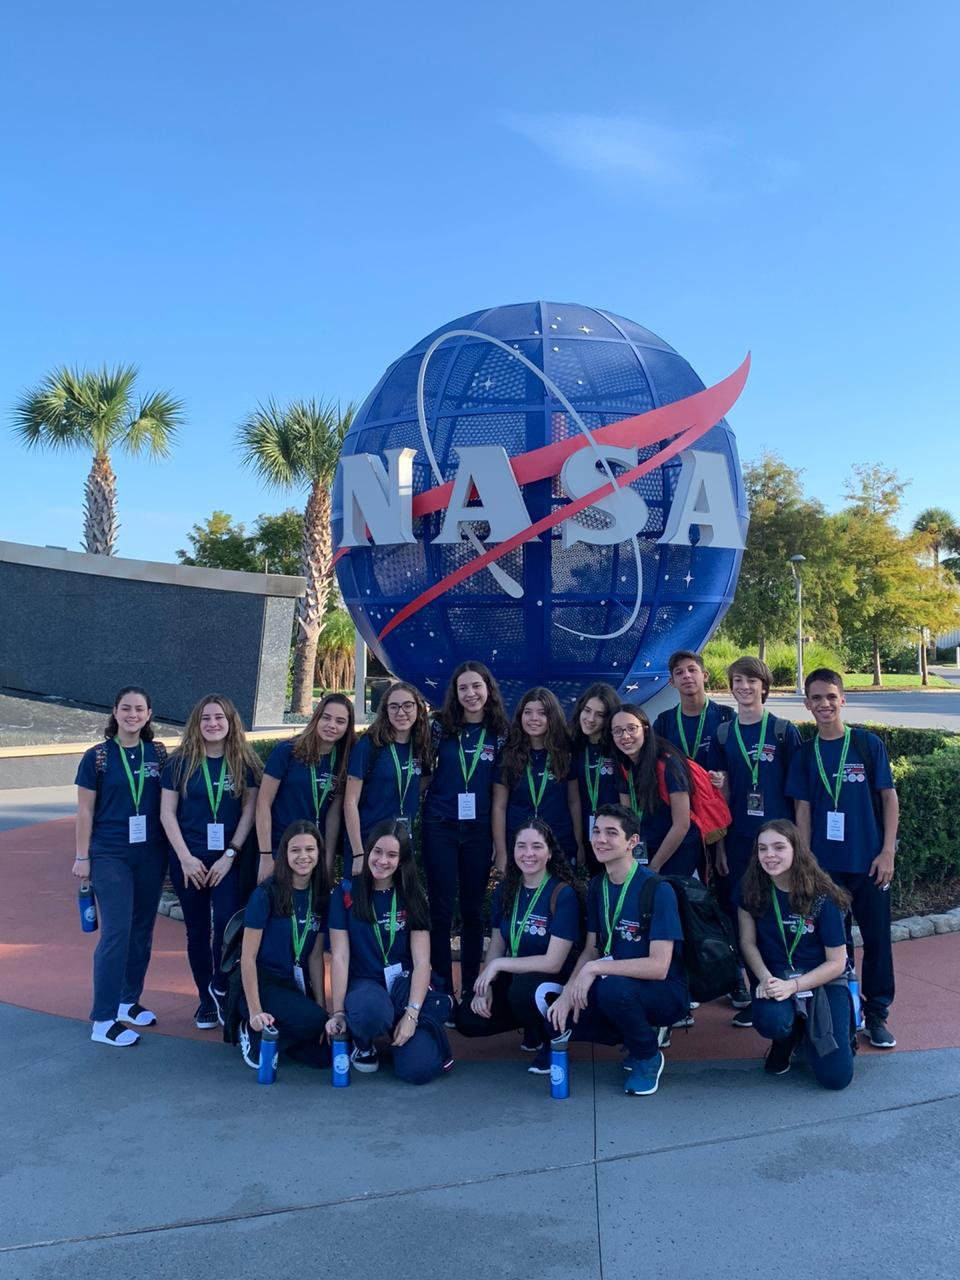 28/10: Kennedy Space Center